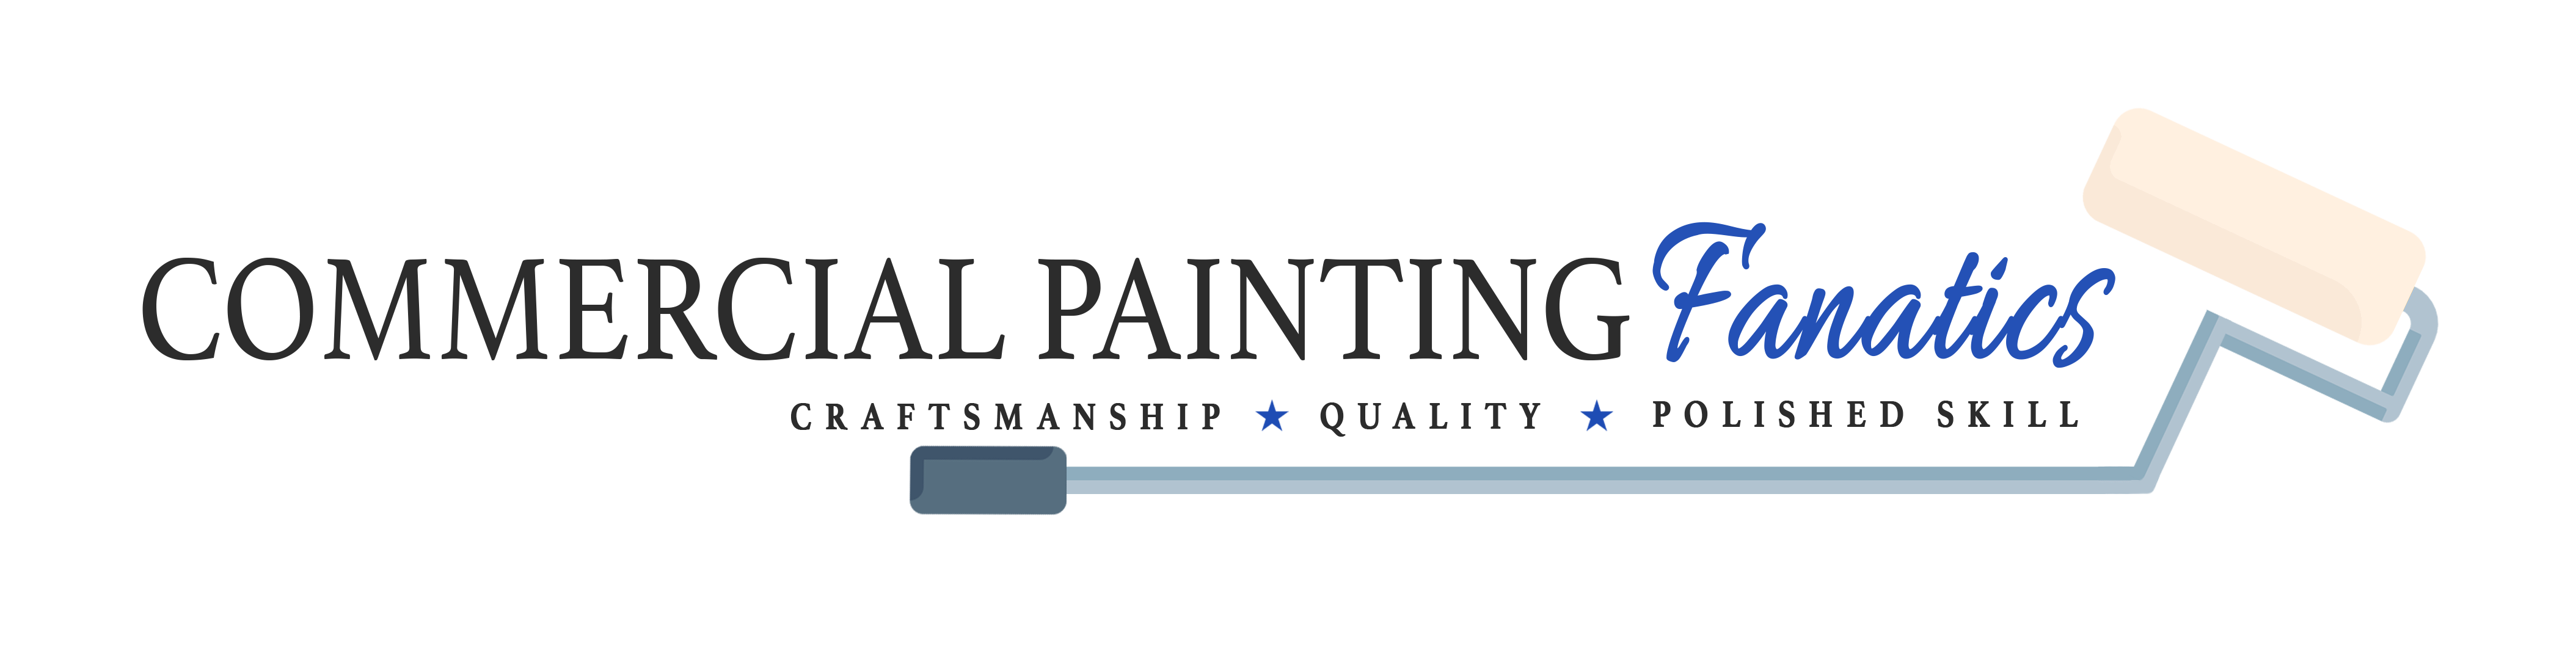 Commercial Painters Reno Nevada